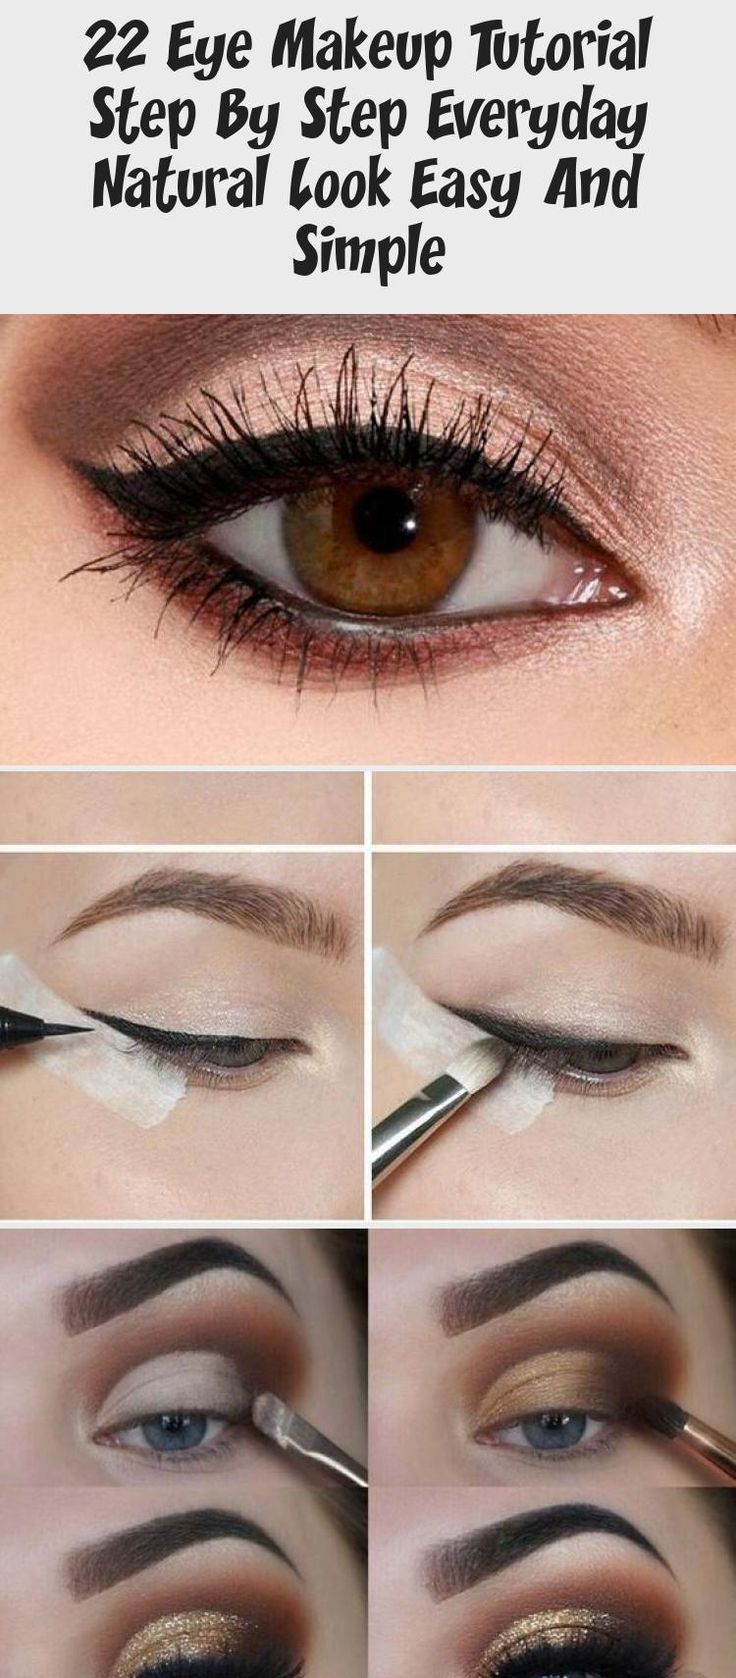 22 Eye Makeup Tutorial Step By Step Everyday Natural Look ...